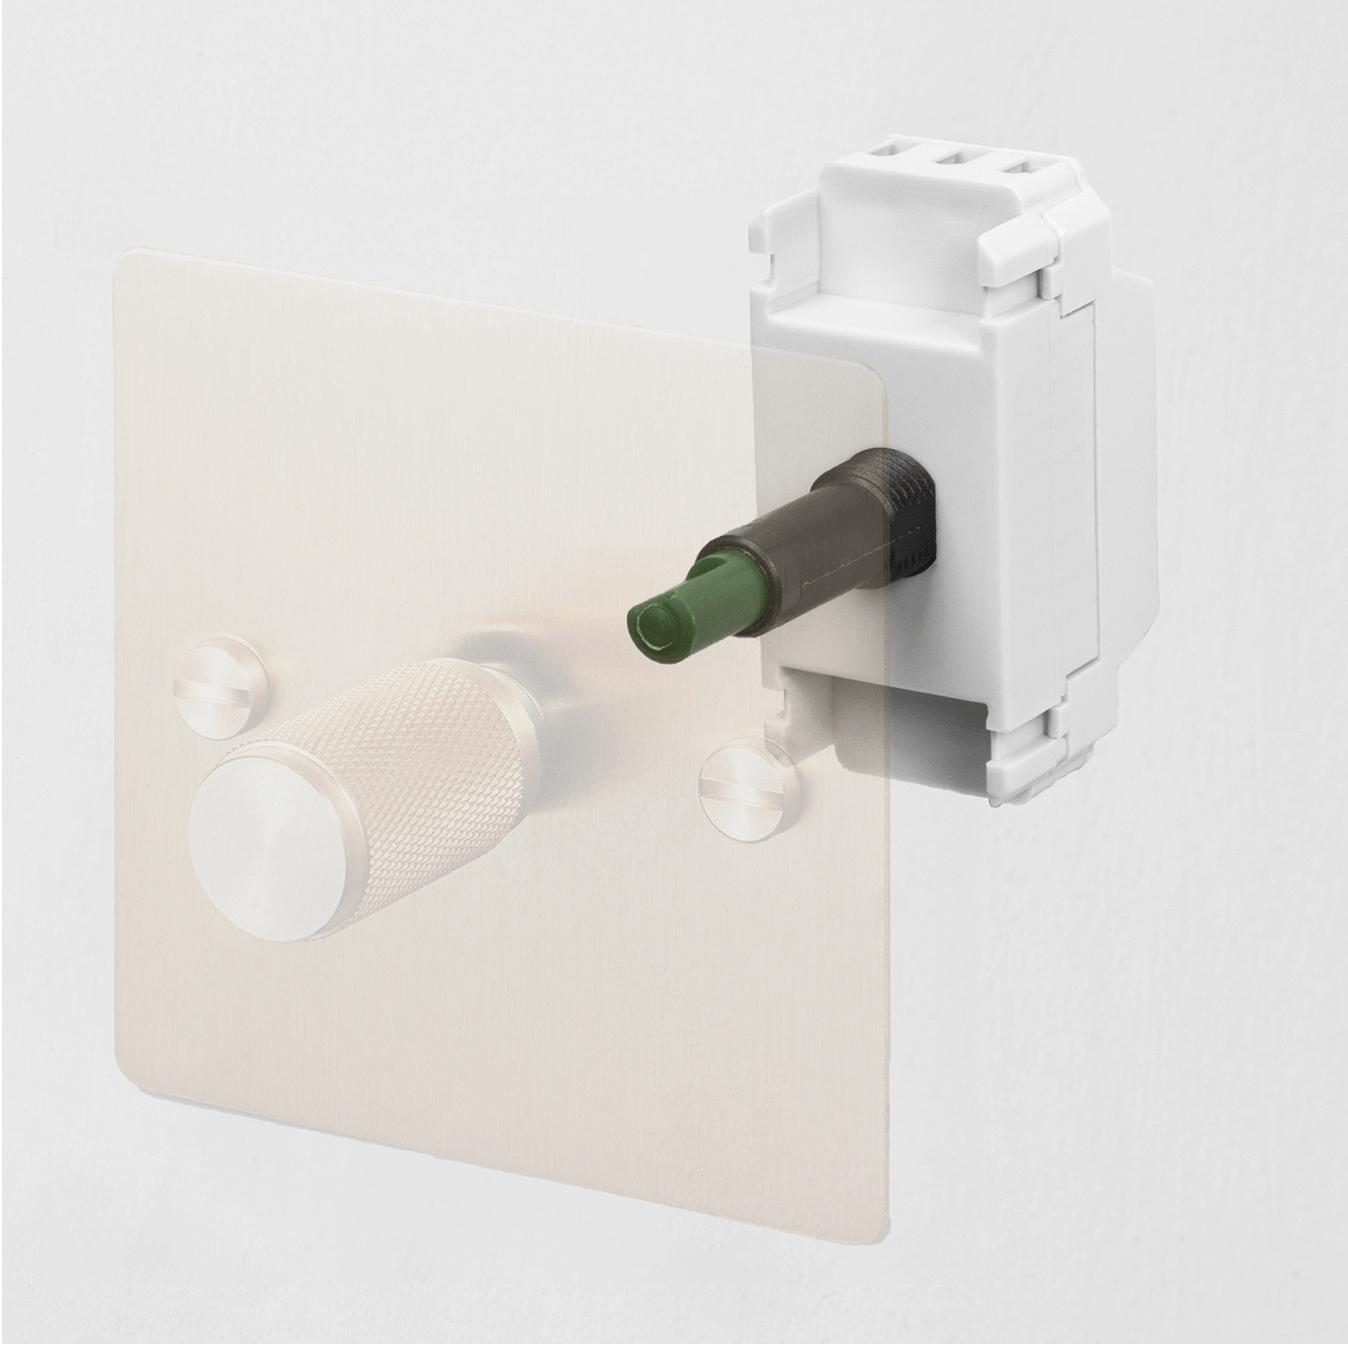 Buster and Punch DIMMER MODULES / INTERMEDIATE PUSH ON/OFF SWITCH (3 WAY) - No.42 Interiors